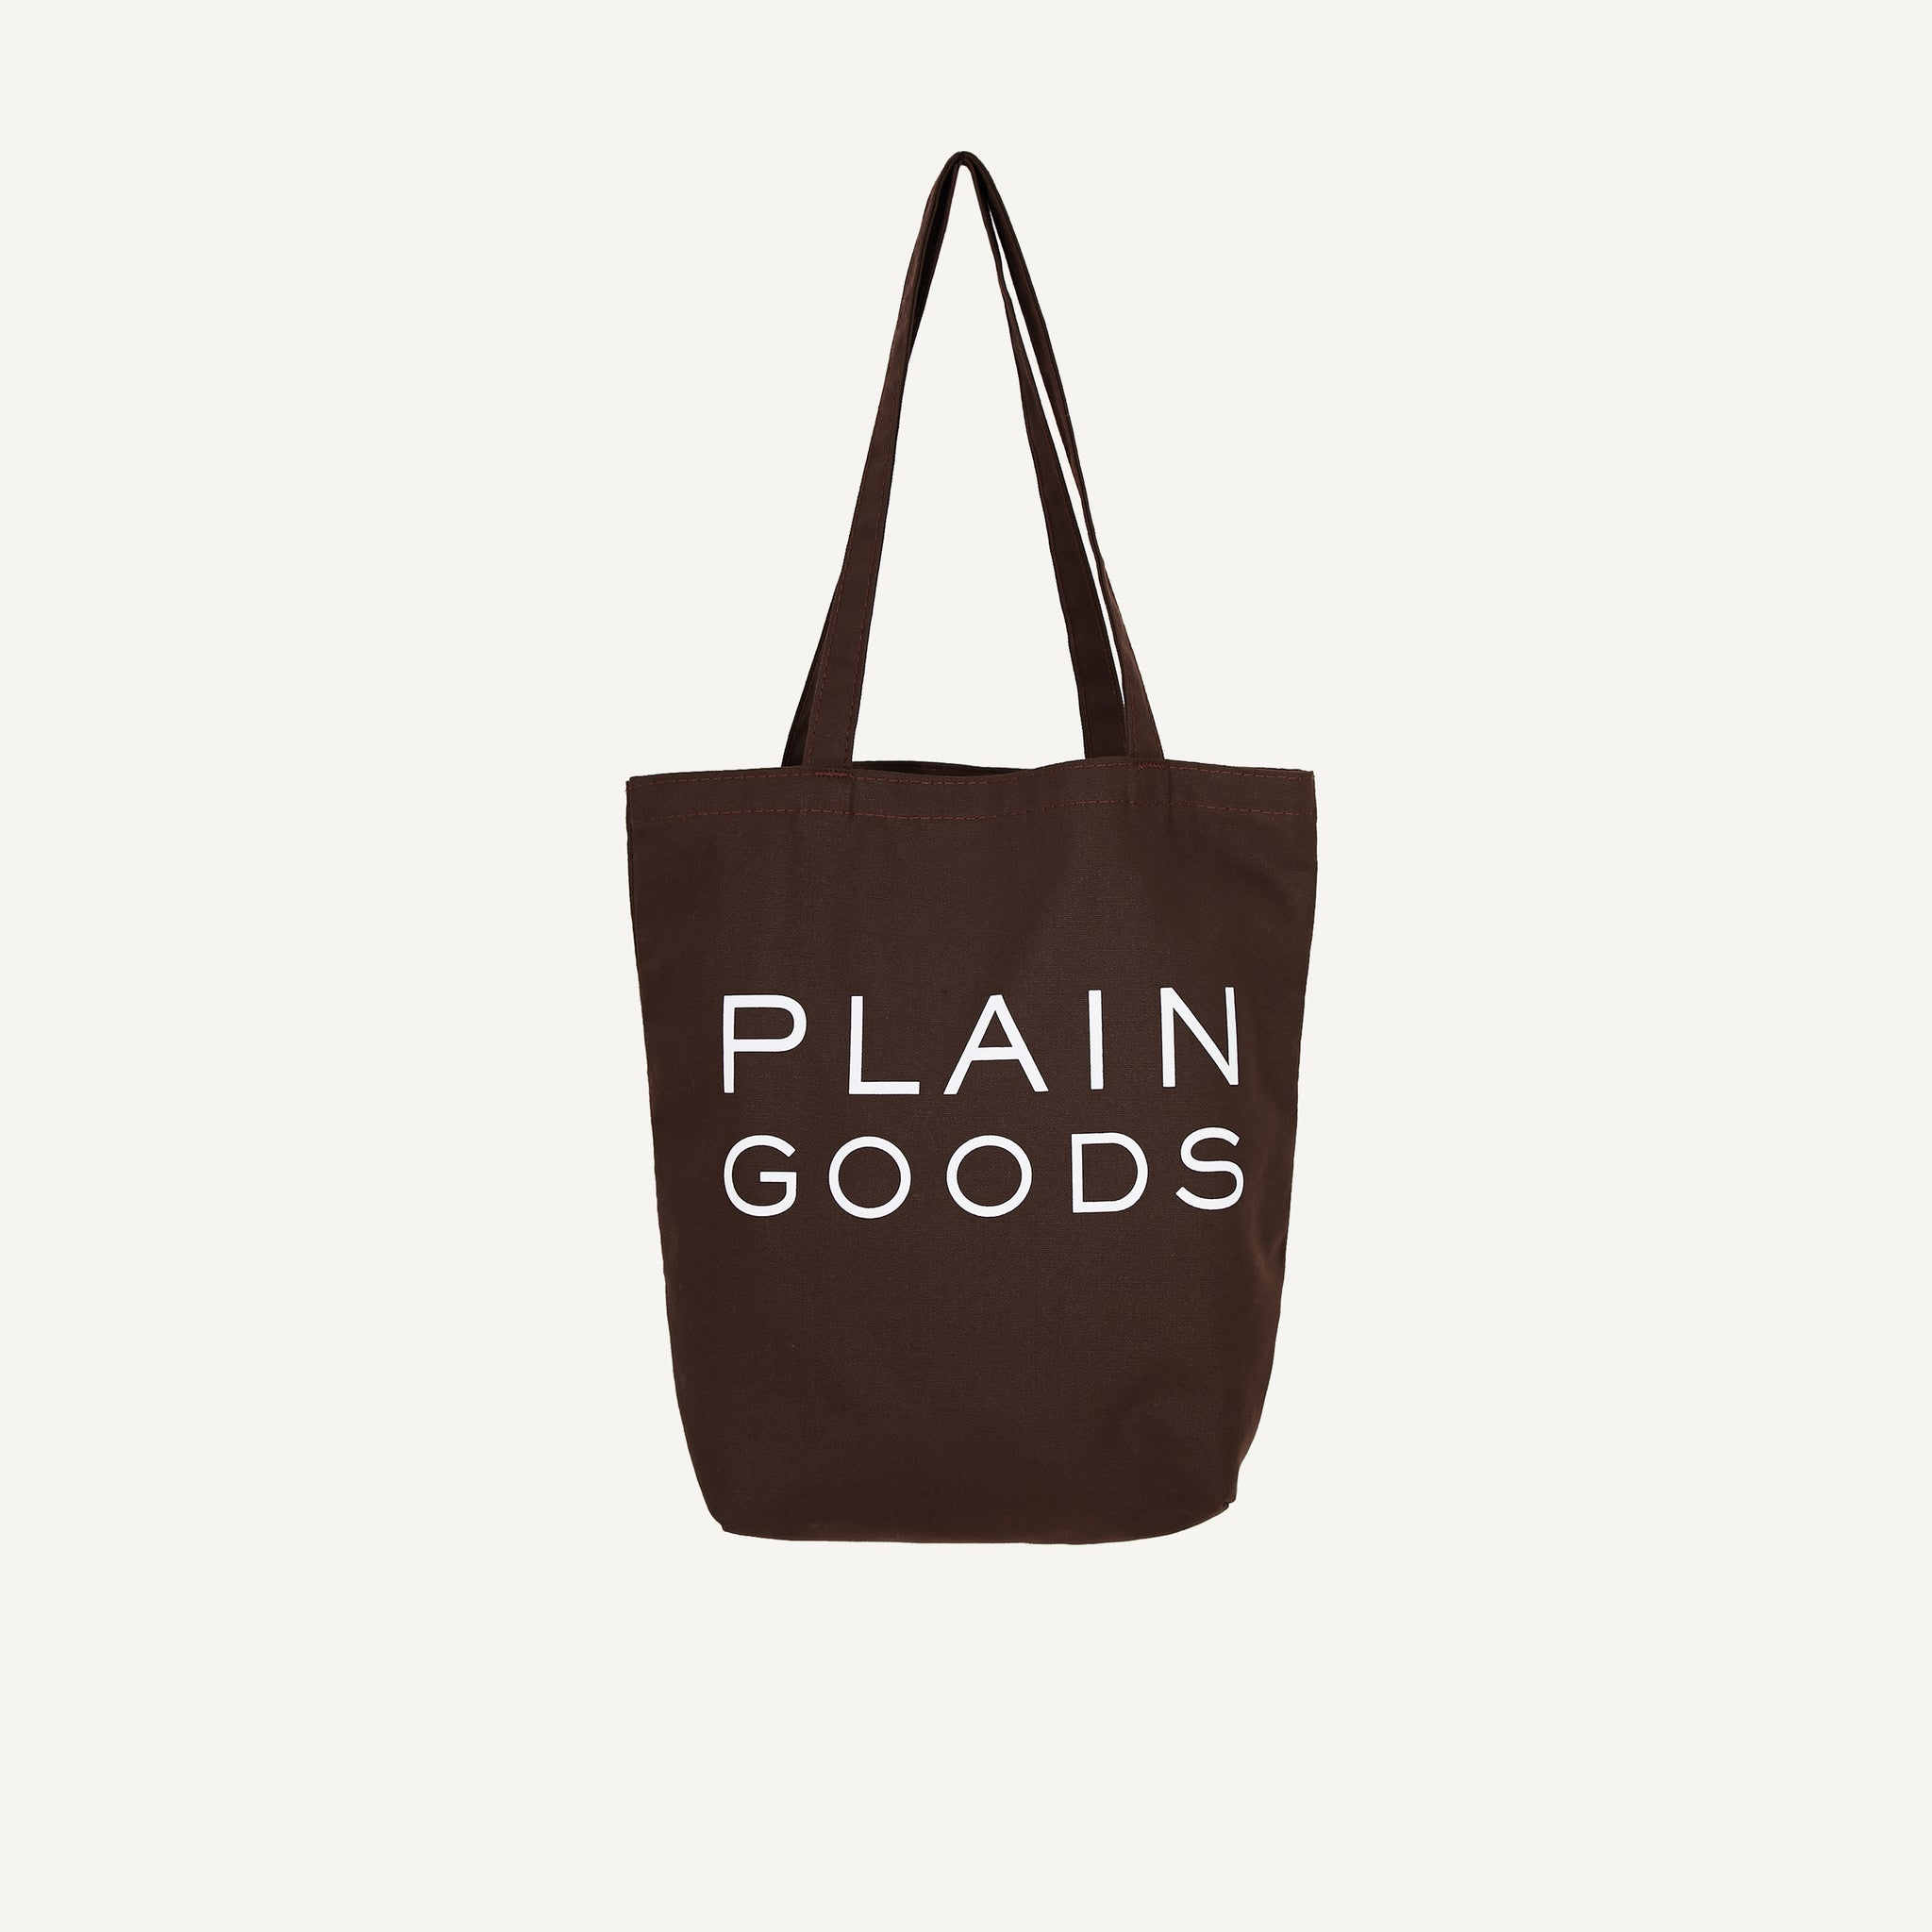 PLAIN GOODS ORGANIC COTTON TOTE